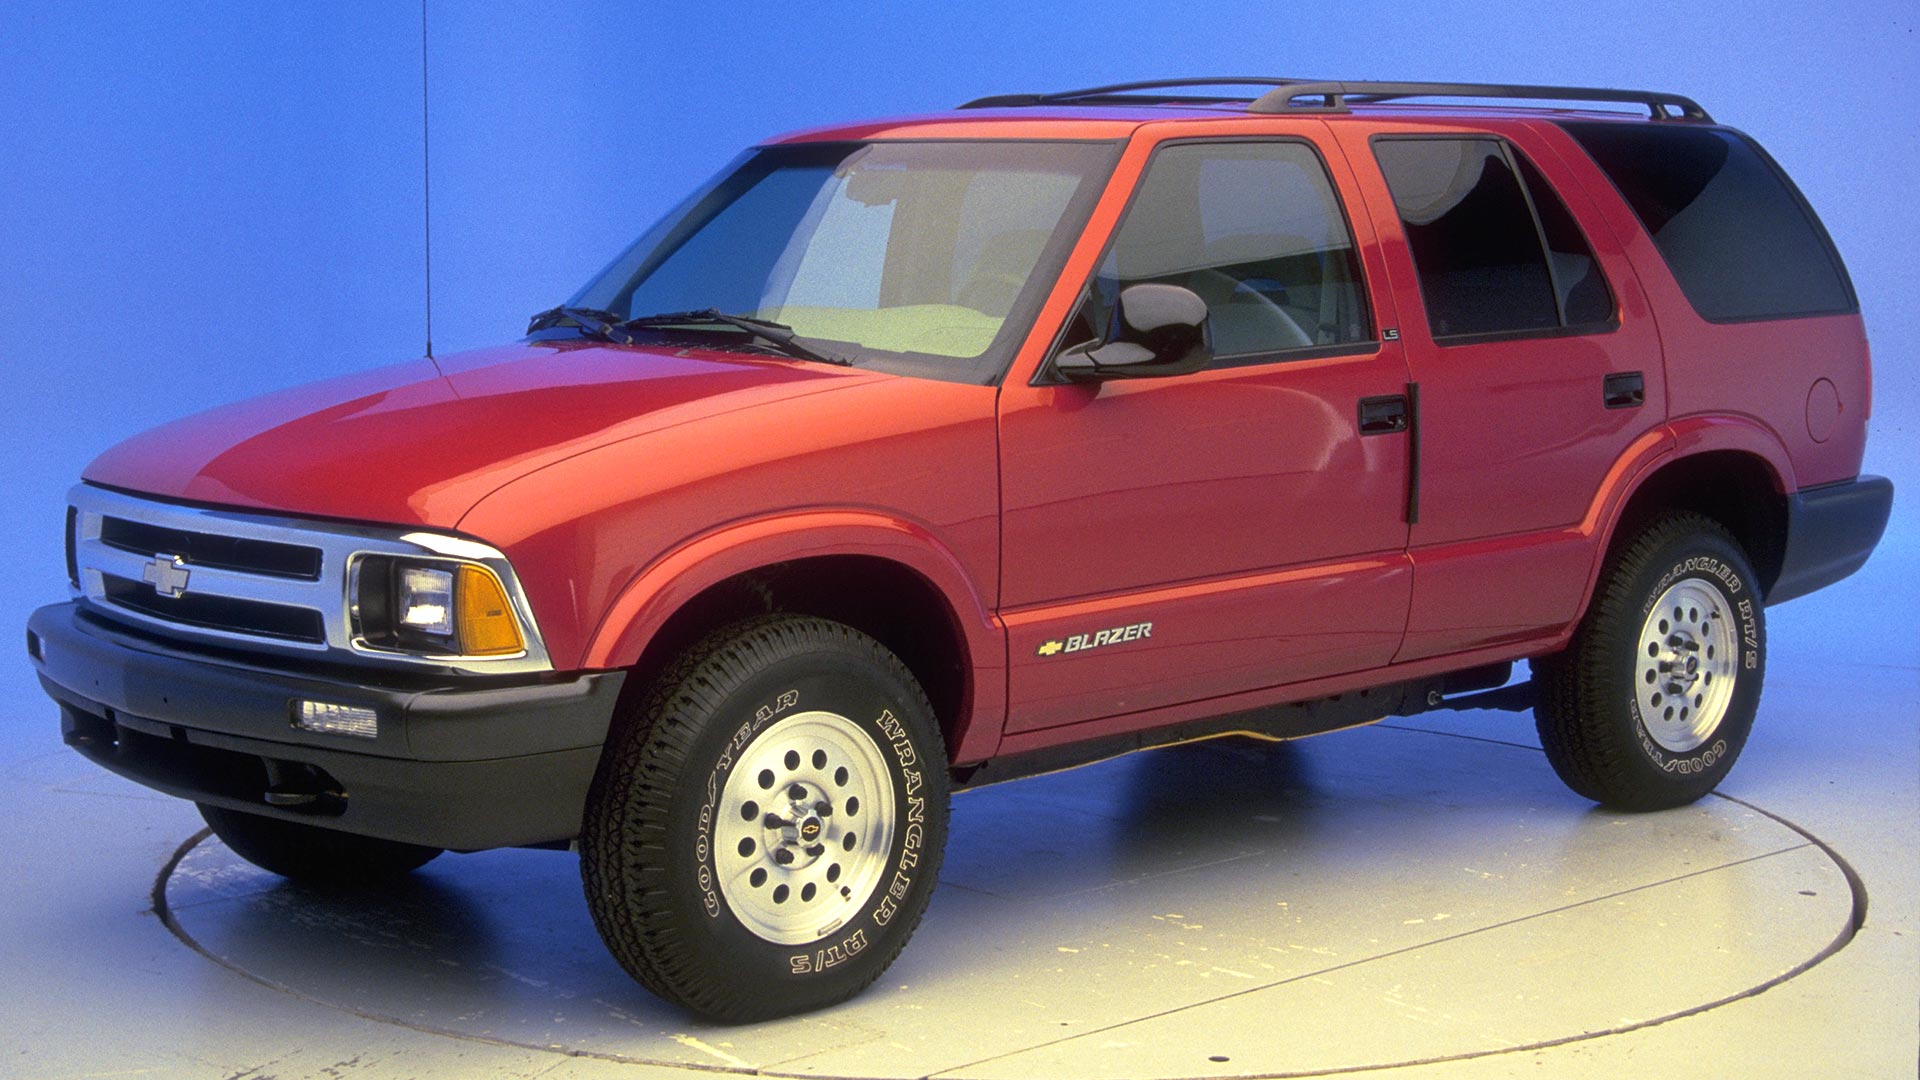 2002 Chevrolet Blazer 4-door SUV